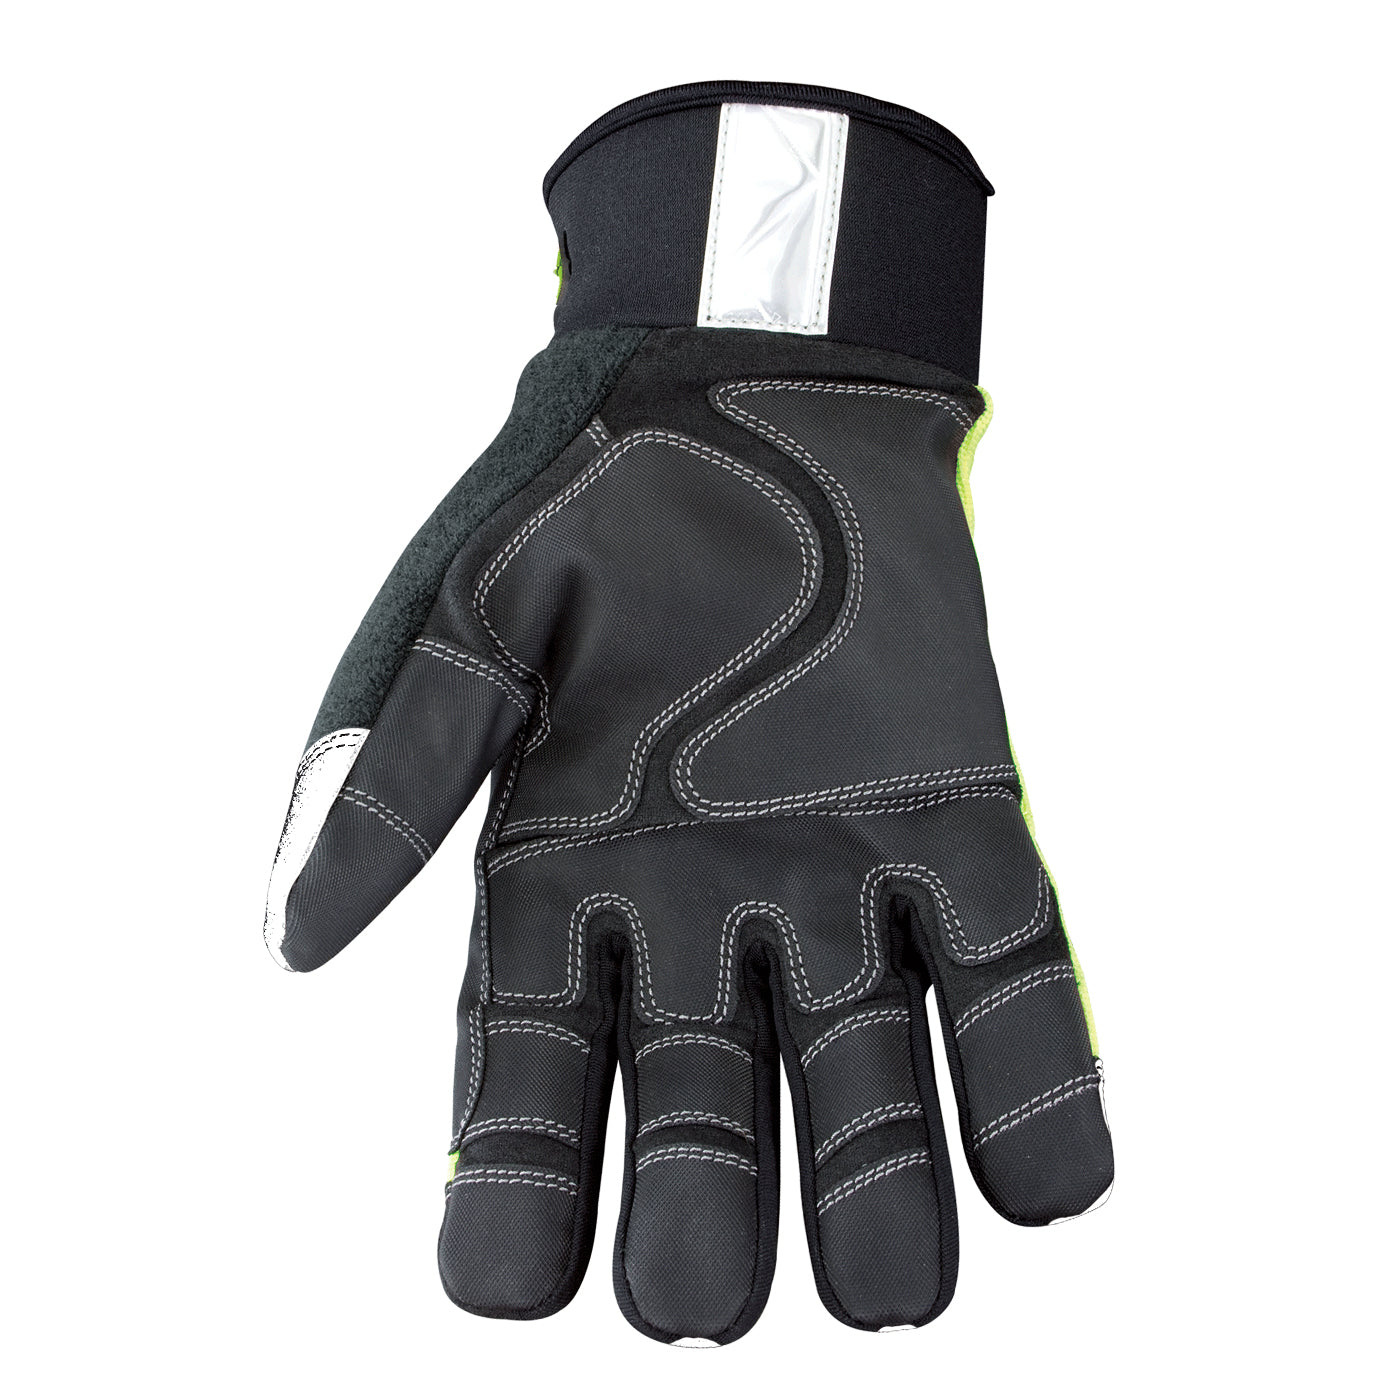 08-3710-10 Youngstown Safety Lime Winter Glove - Main image